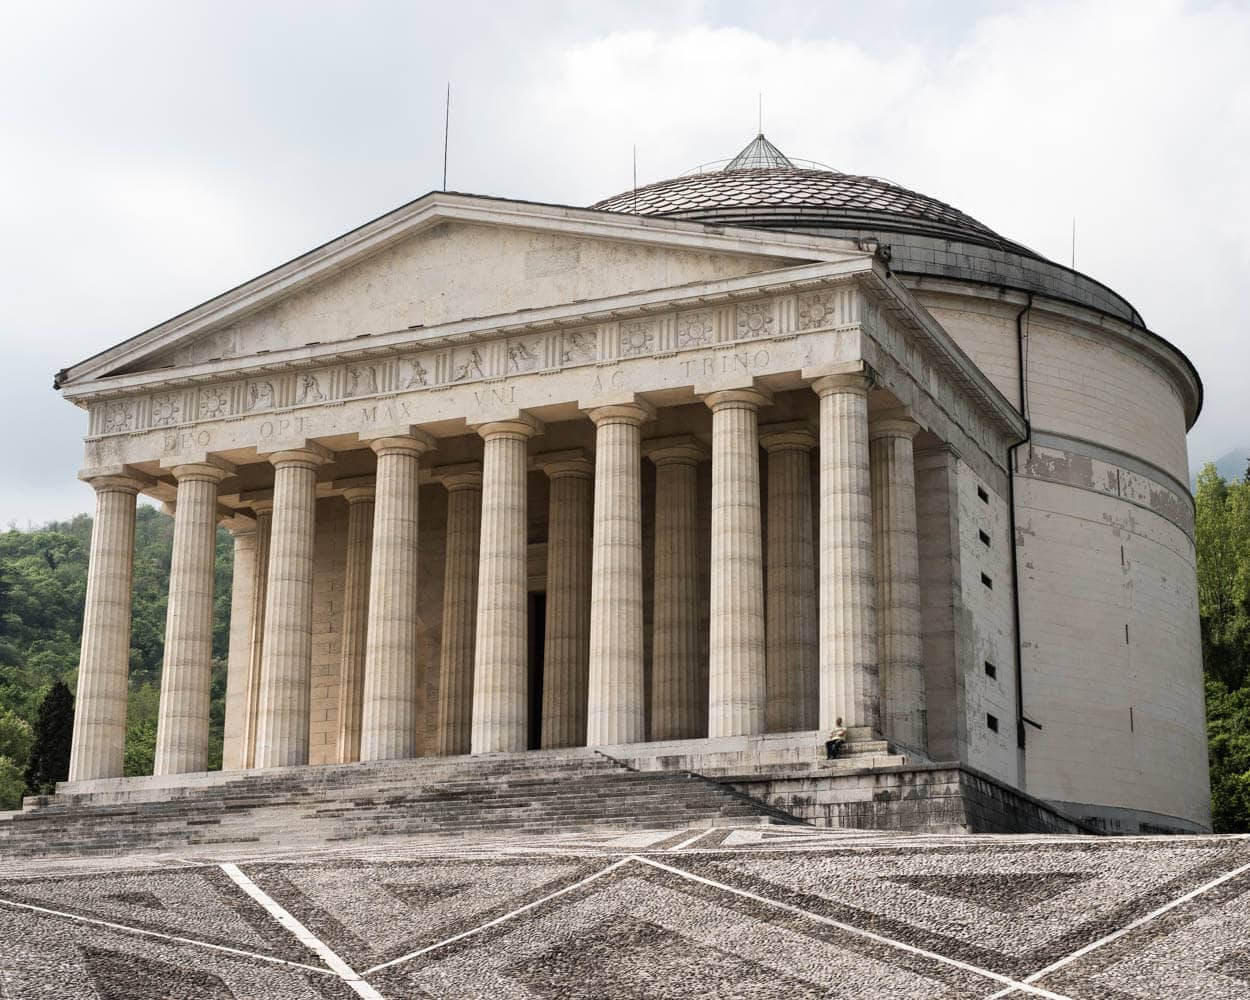 Canova's Temple in Possagno